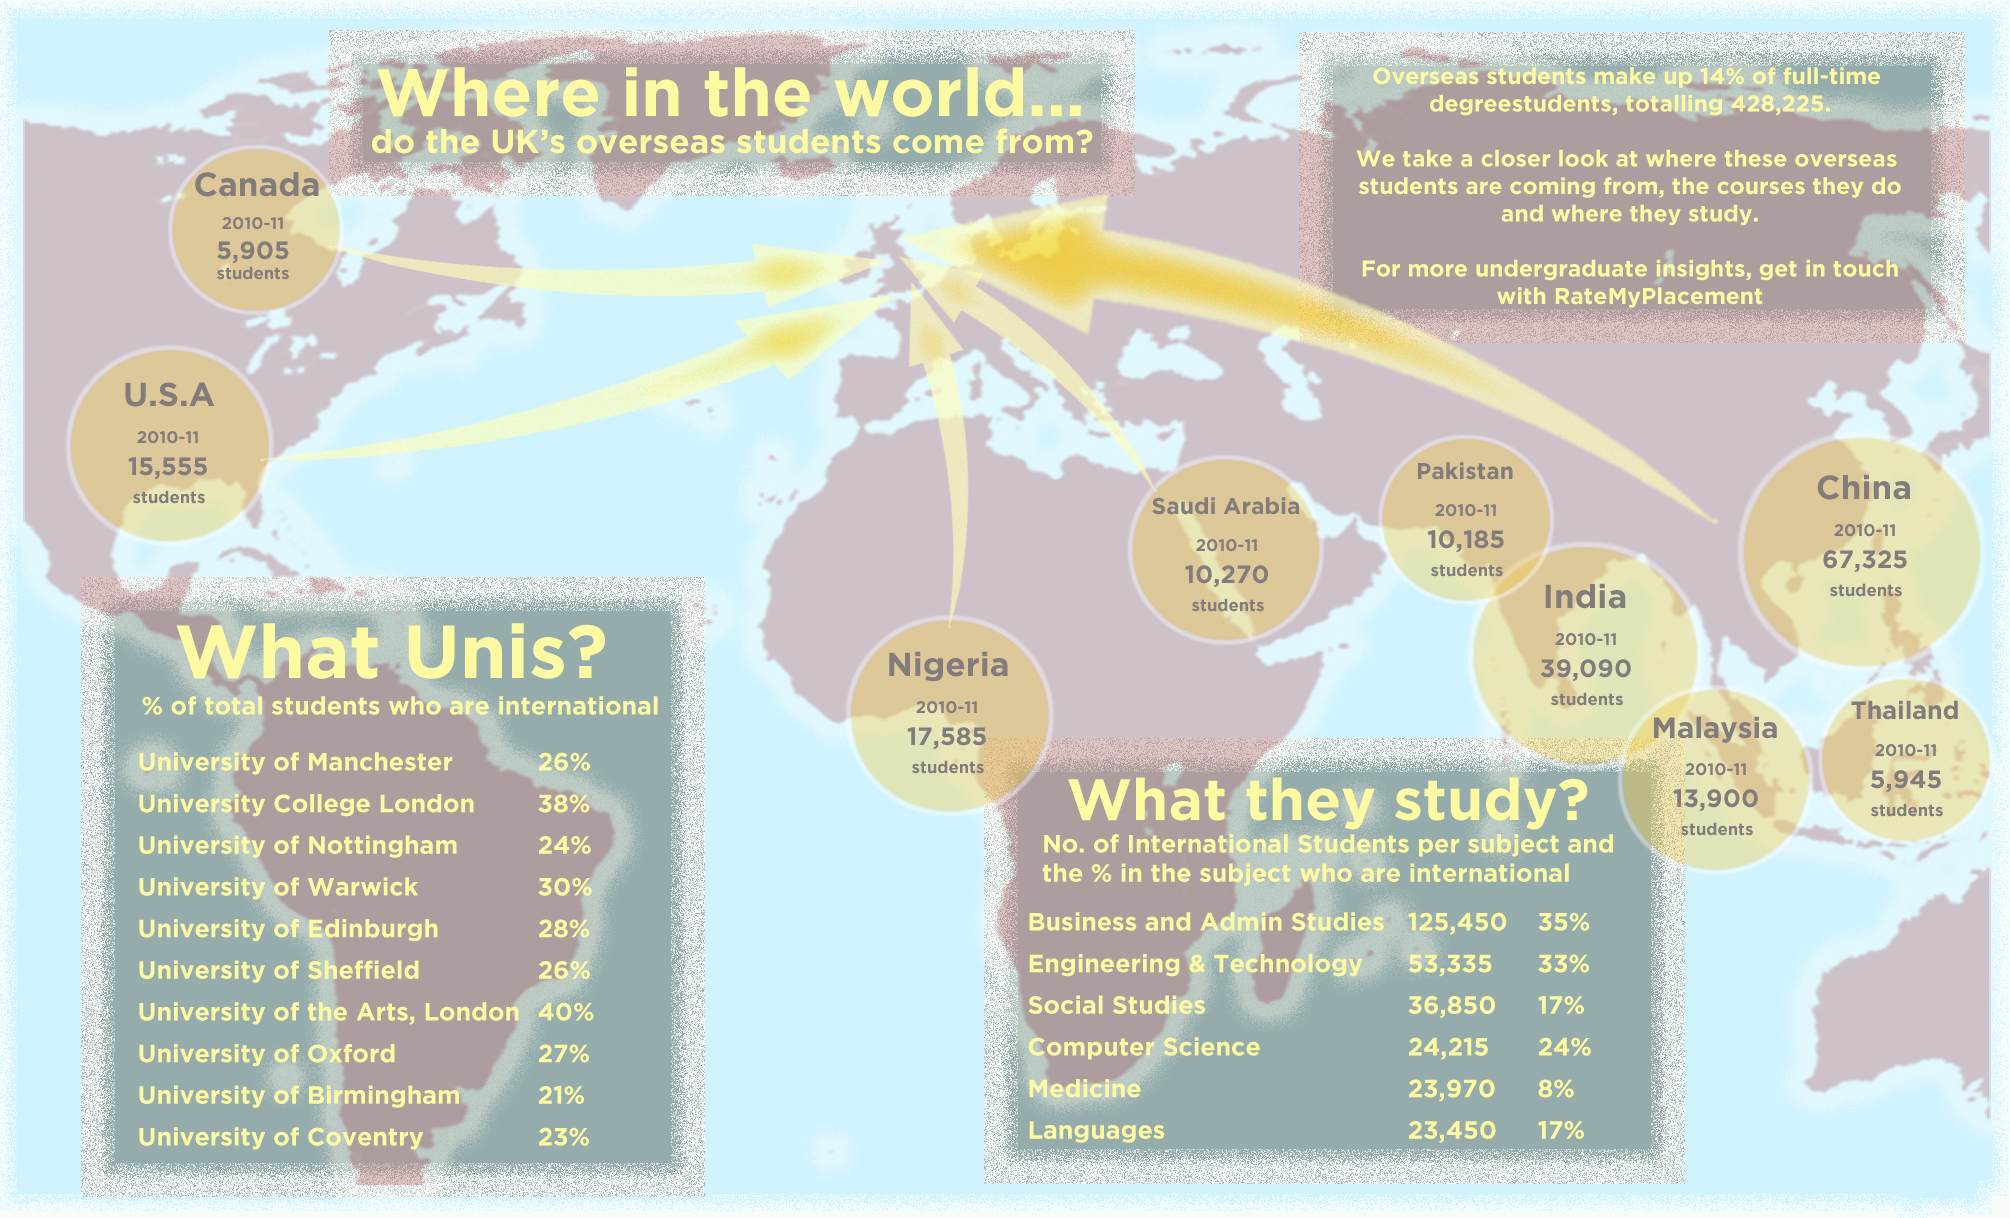 international-students-in-the-uk-infographic_504899502136e